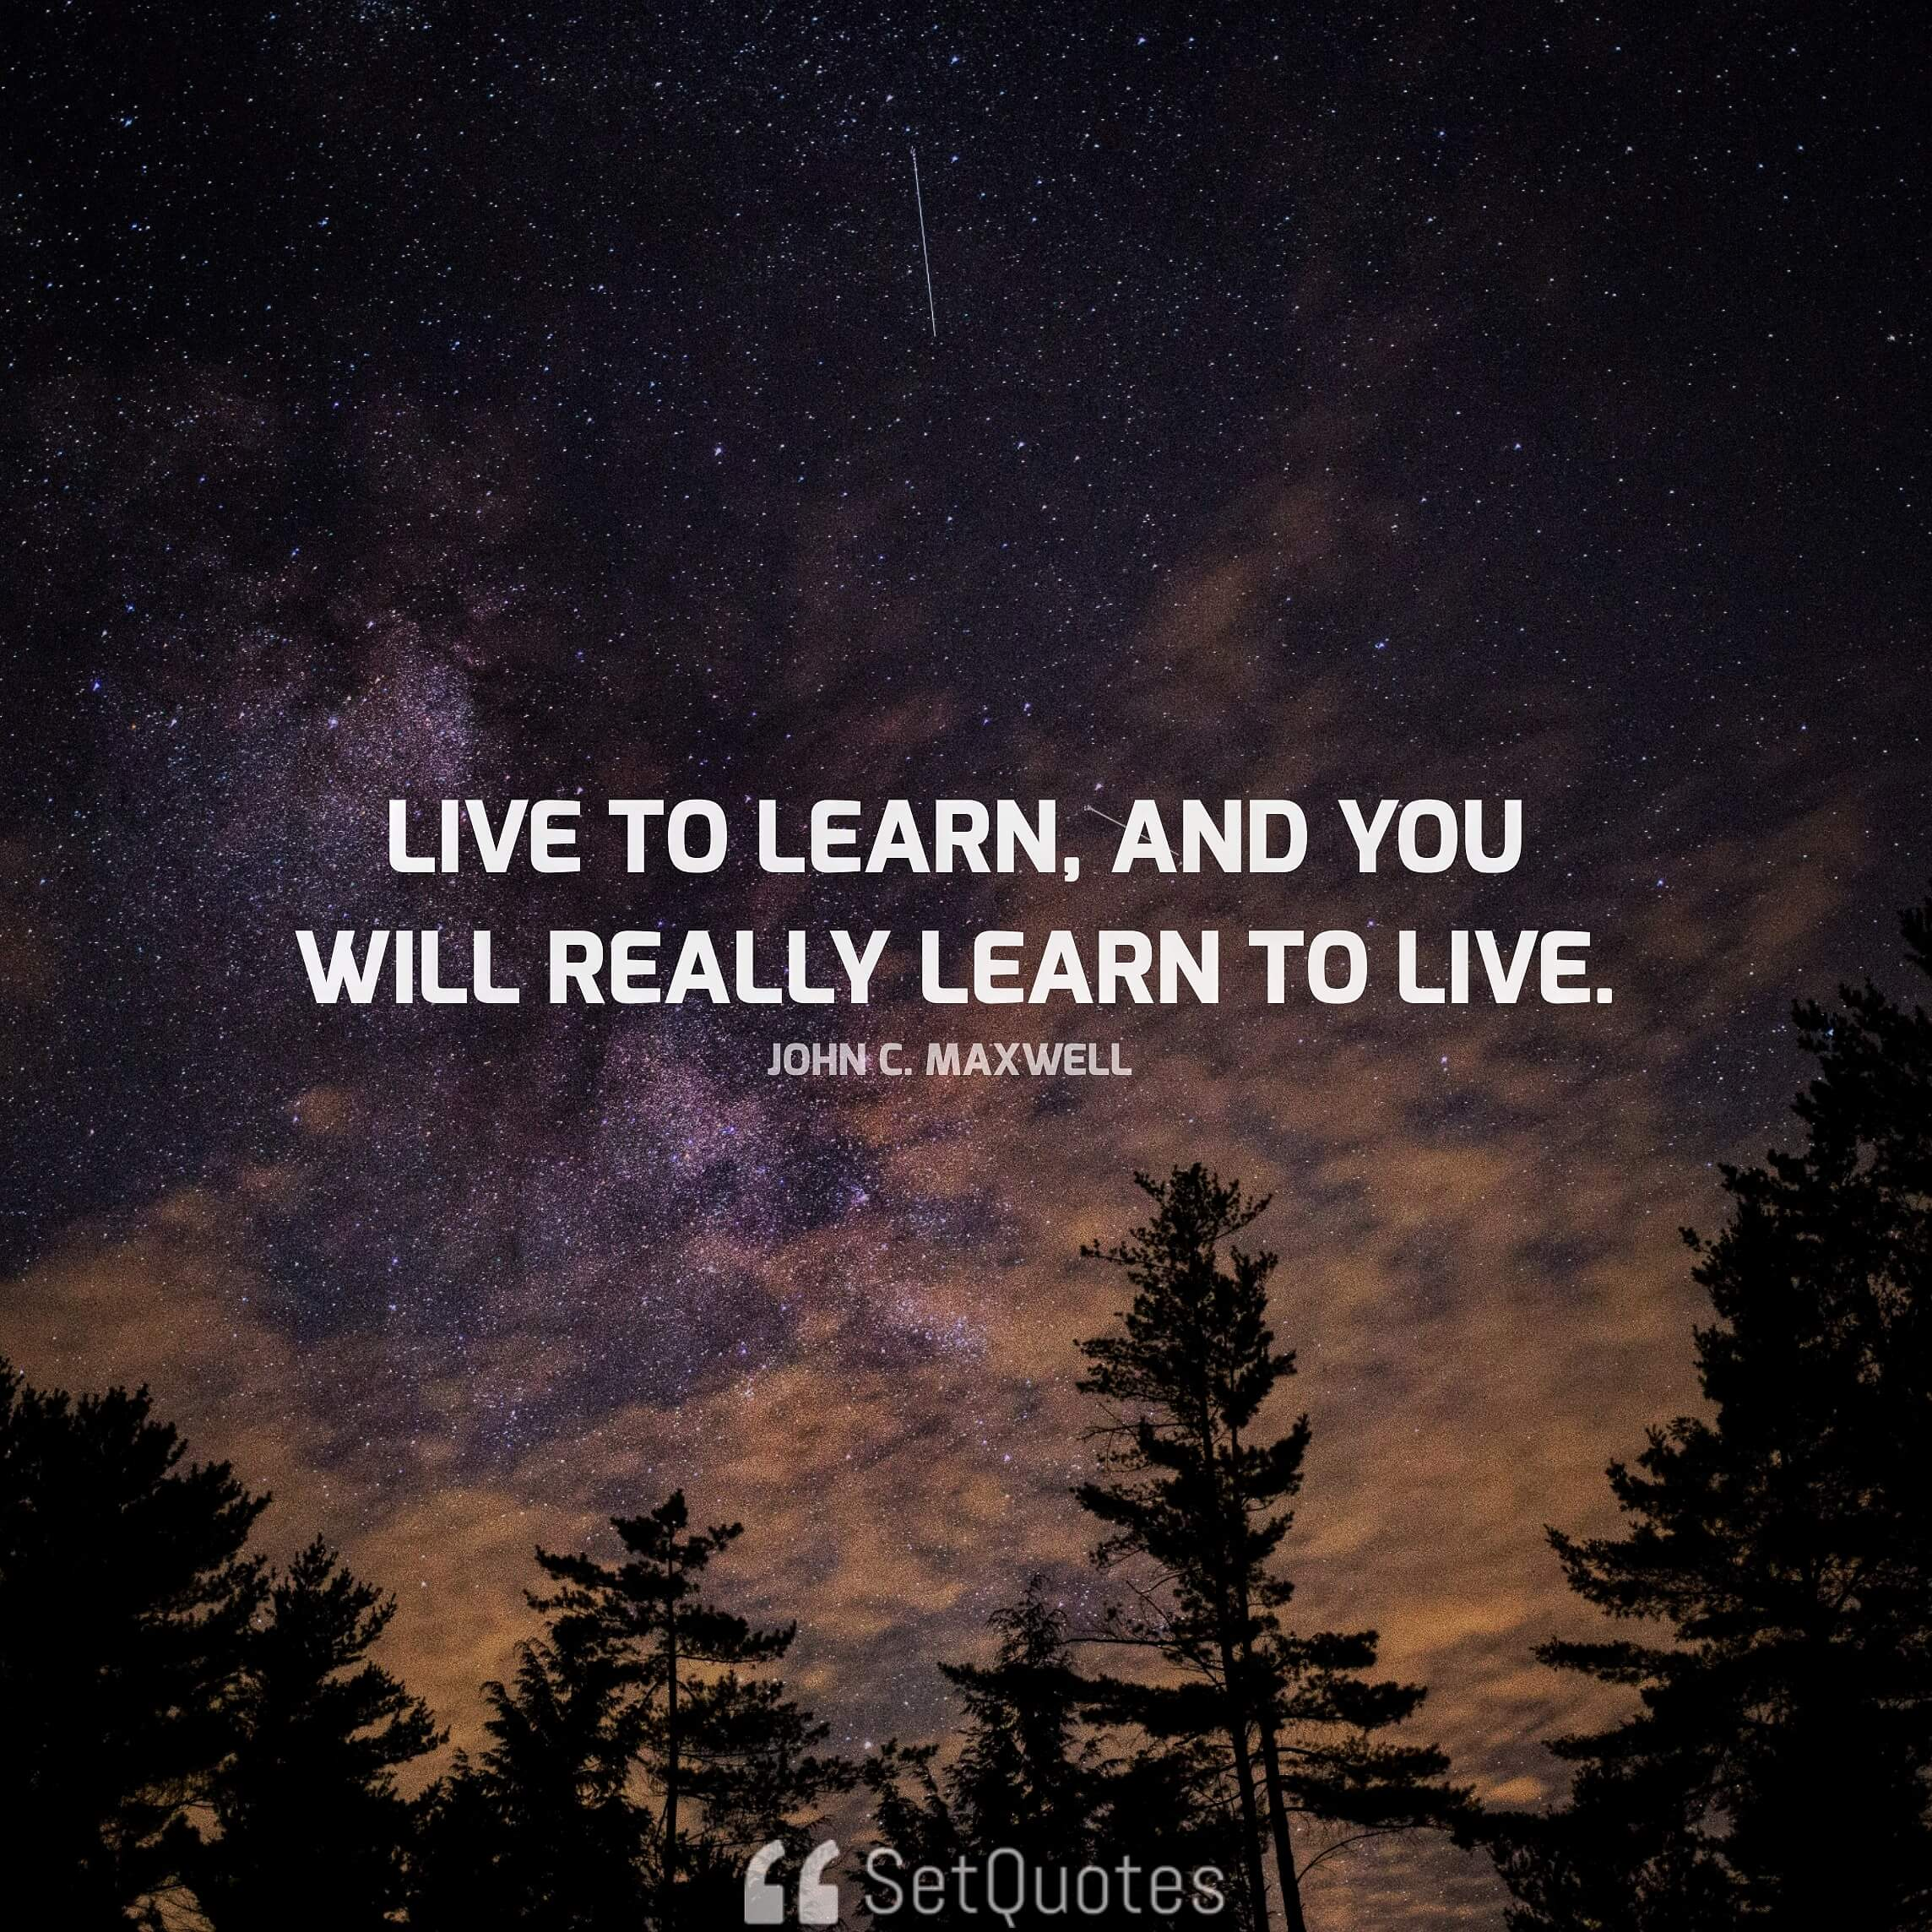 Live to learn, and you will really learn to live. - John C. Maxwell